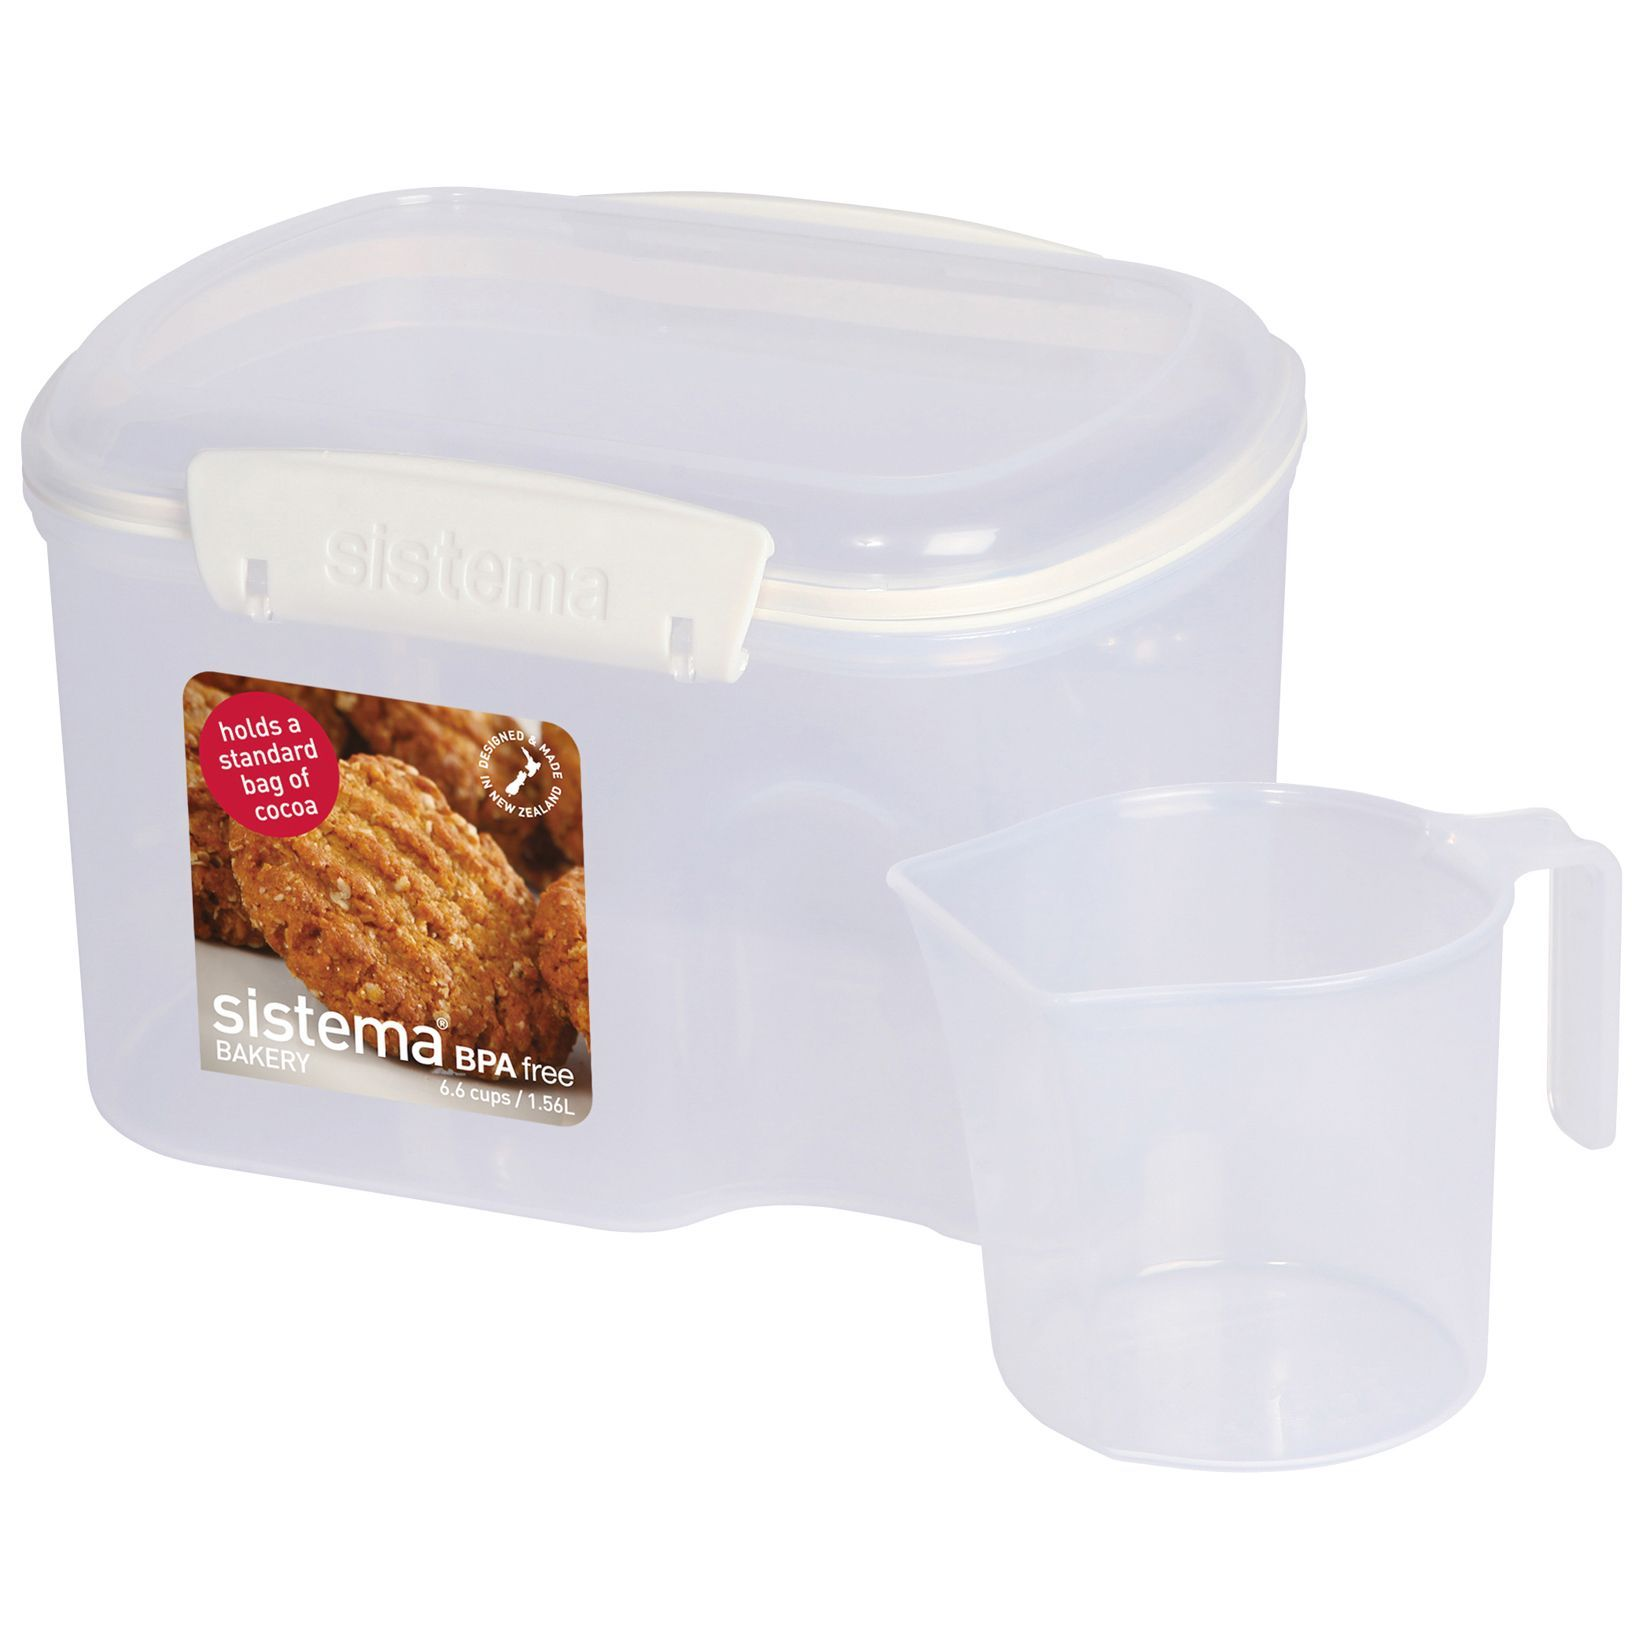 Best Kitchen Gallery: Sistema 1230 6 6 Cups Clear Rectangular Bakery Storage Container of Plastic Storage Containers By Size on rachelxblog.com